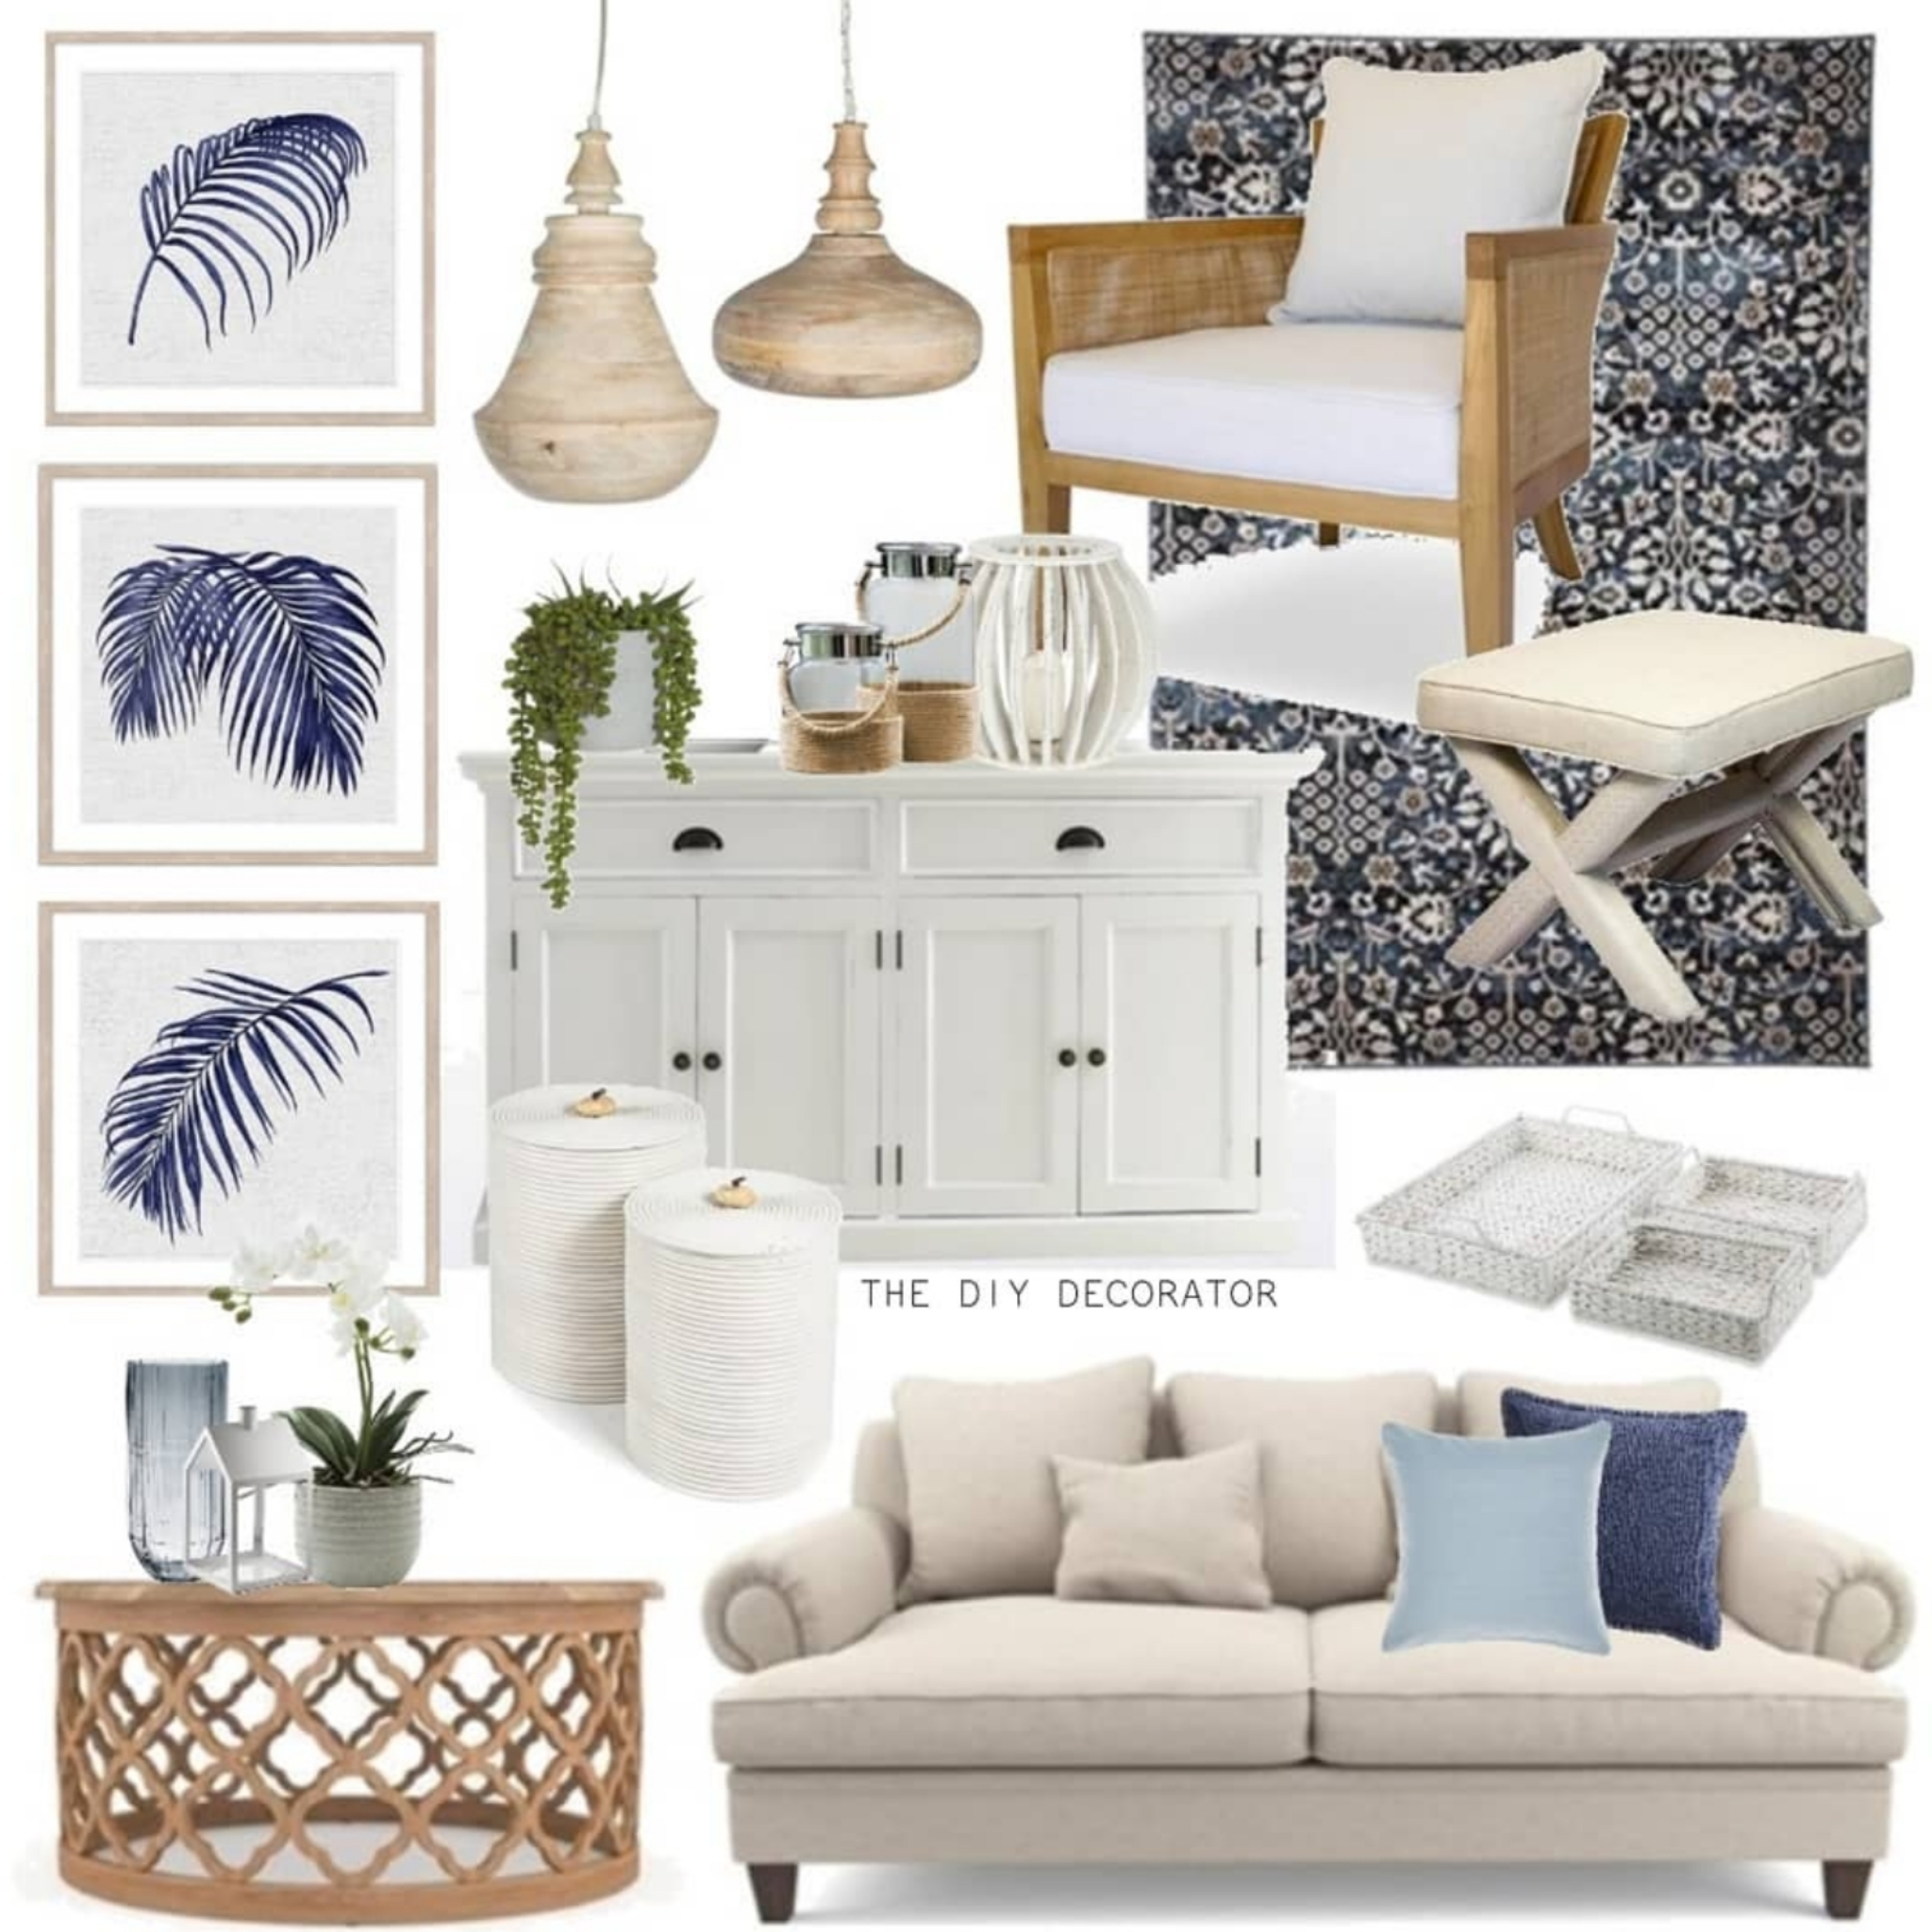 Hamptons Home Styling With I Wanna Go Home – THE DIY DECORATOR